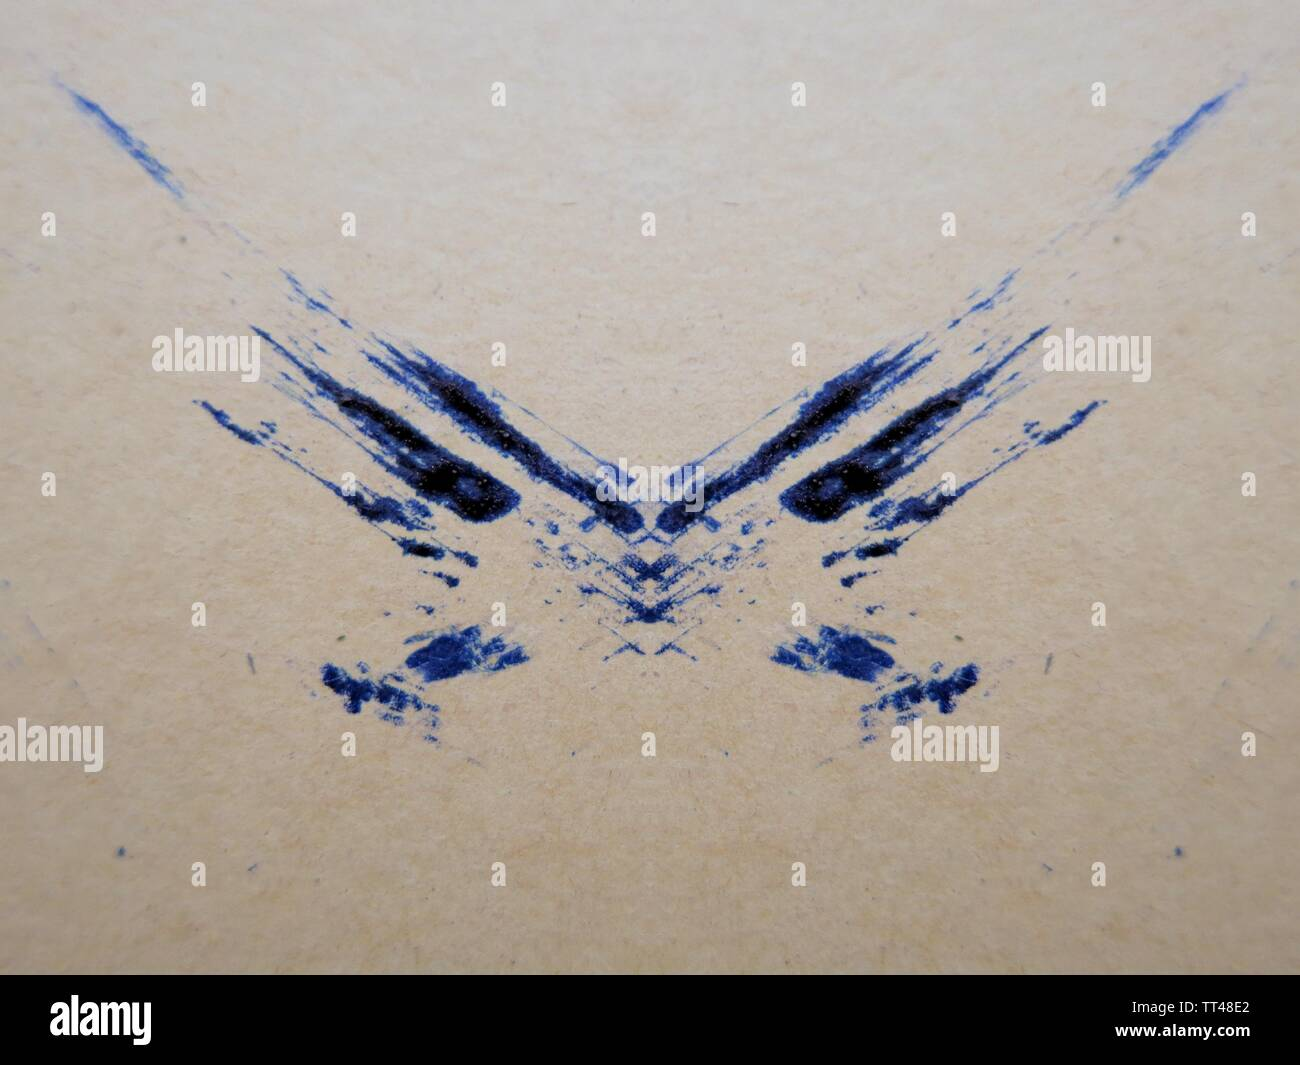 Blue ink smudge on beige paper, abstract. - Stock Image